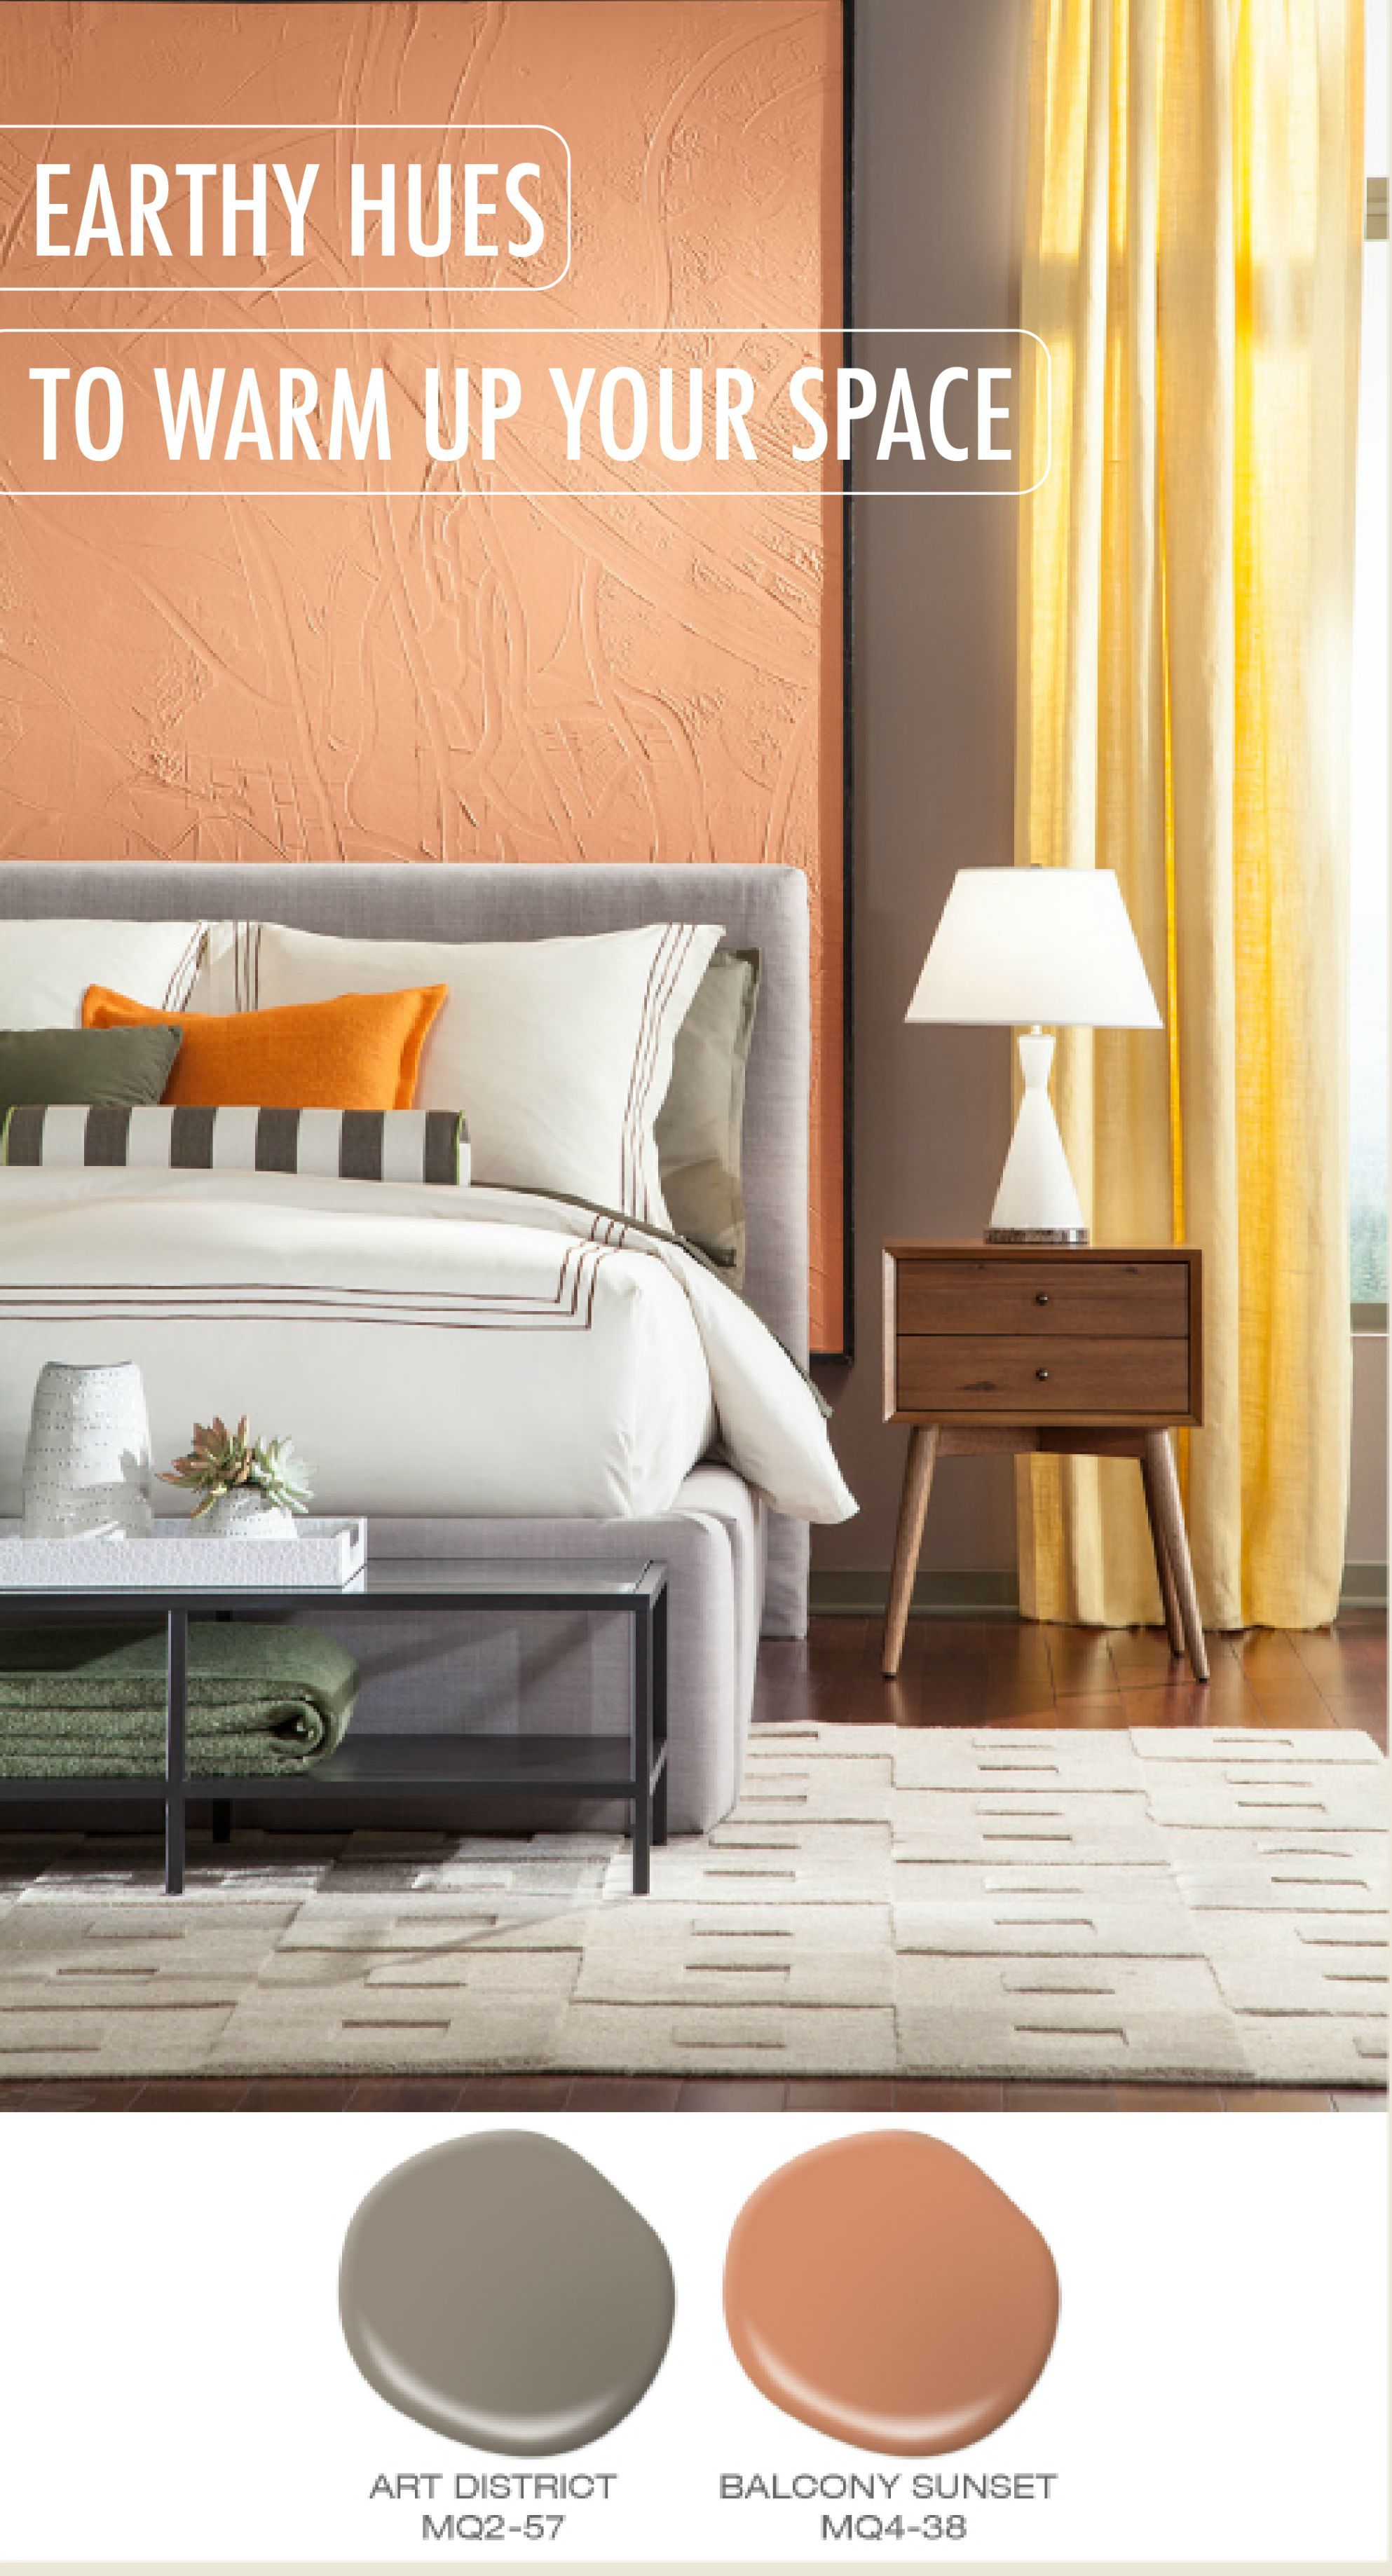 Try Using Earthy Hues Like Art District And Balcony Sunset To Warm Up Your Space These Orange